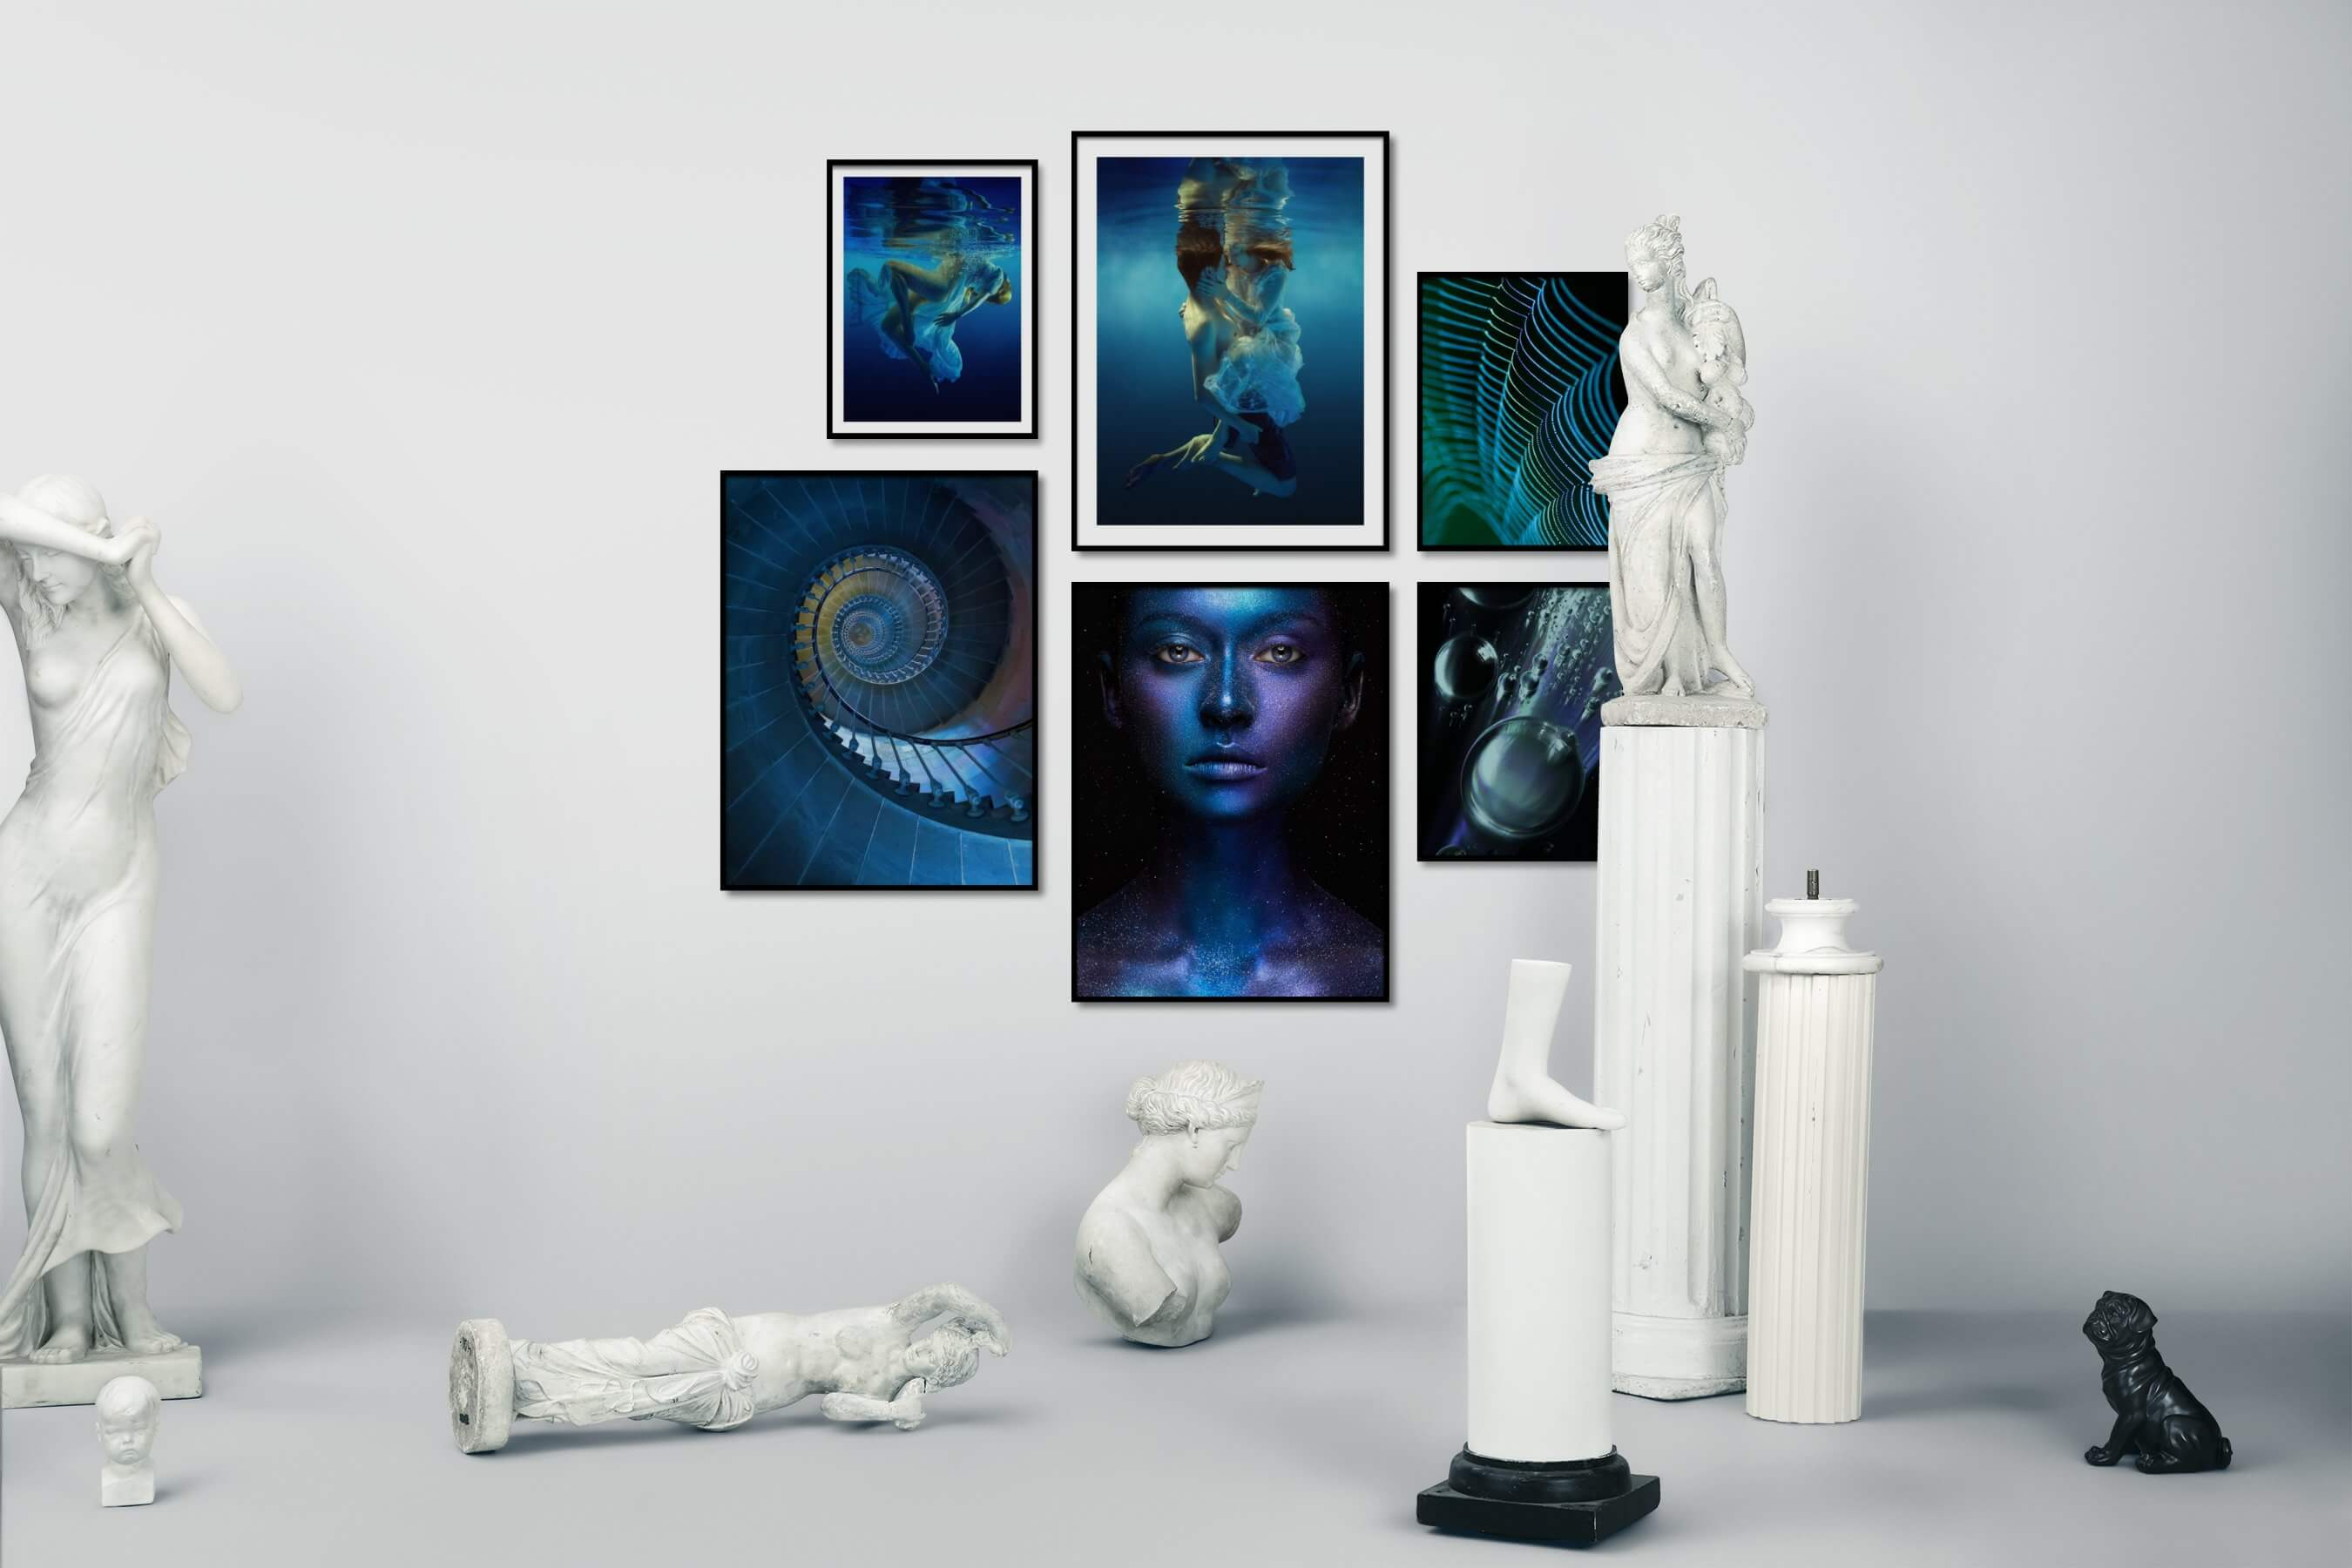 Gallery wall idea with six framed pictures arranged on a wall depicting Fashion & Beauty, Beach & Water, For the Moderate, and Colorful